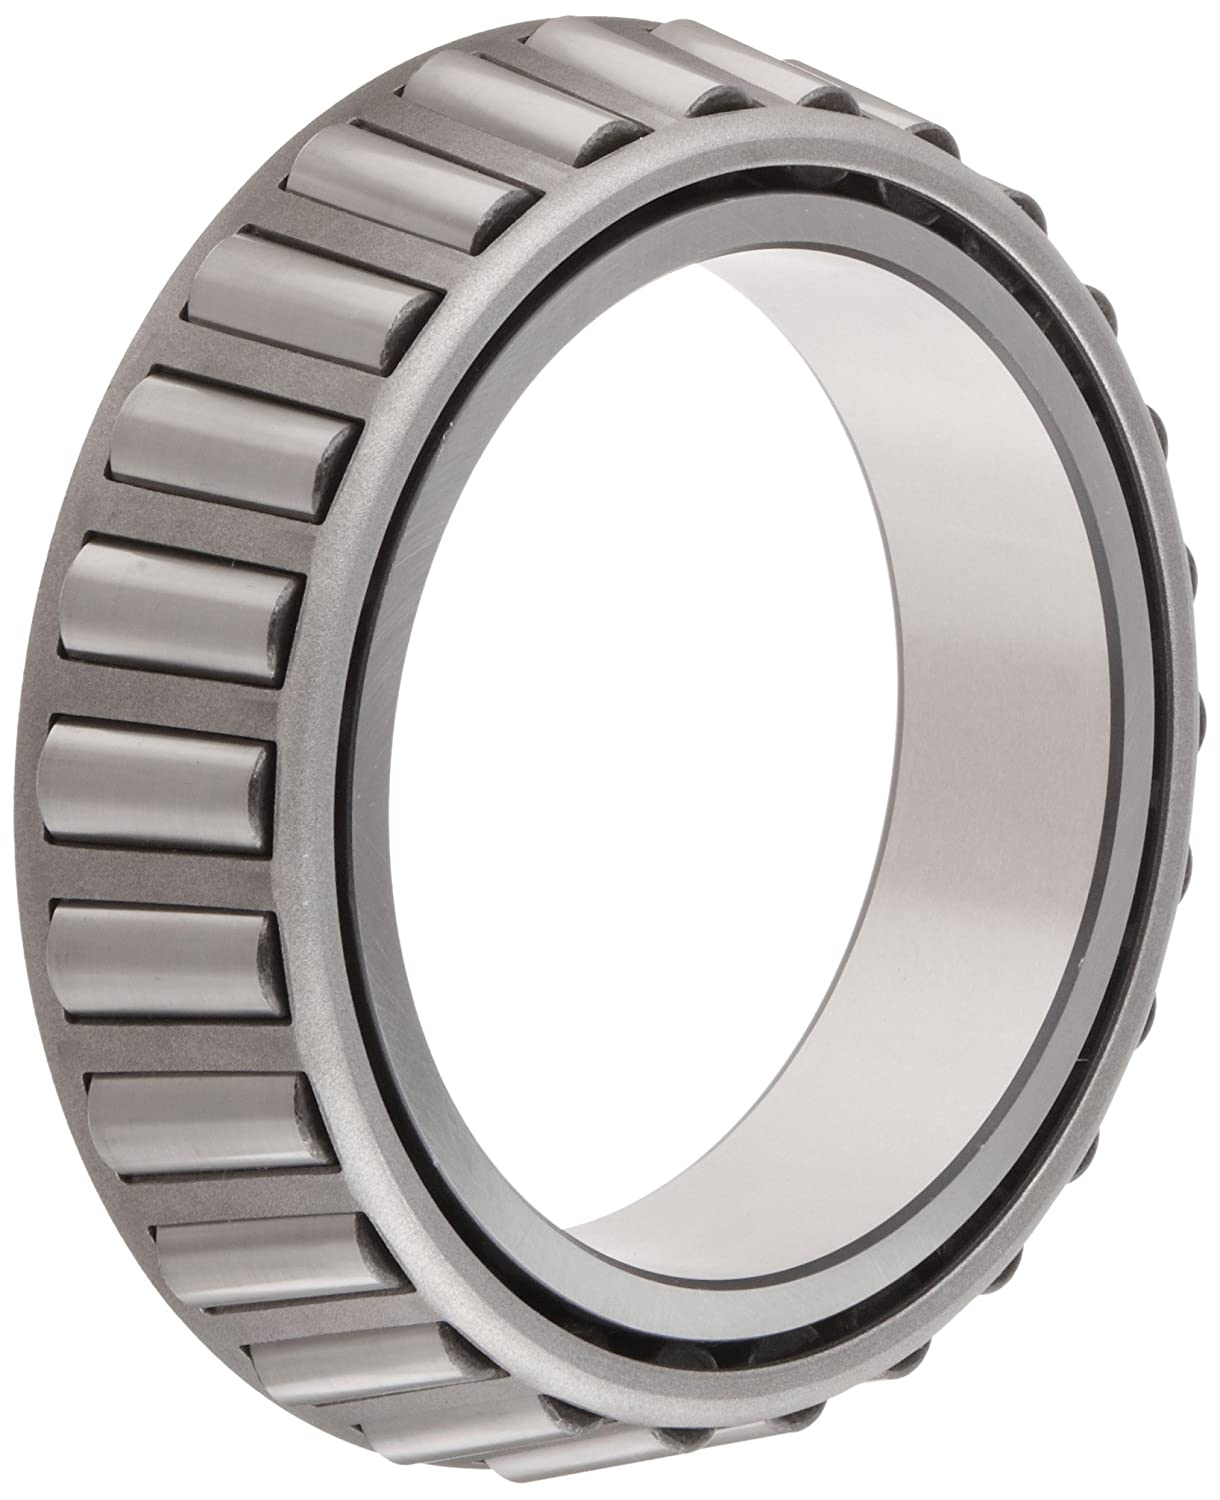 Timken 74537#3 Tapered Roller Be super welcome Super special price Bearing Single Cone To Precision